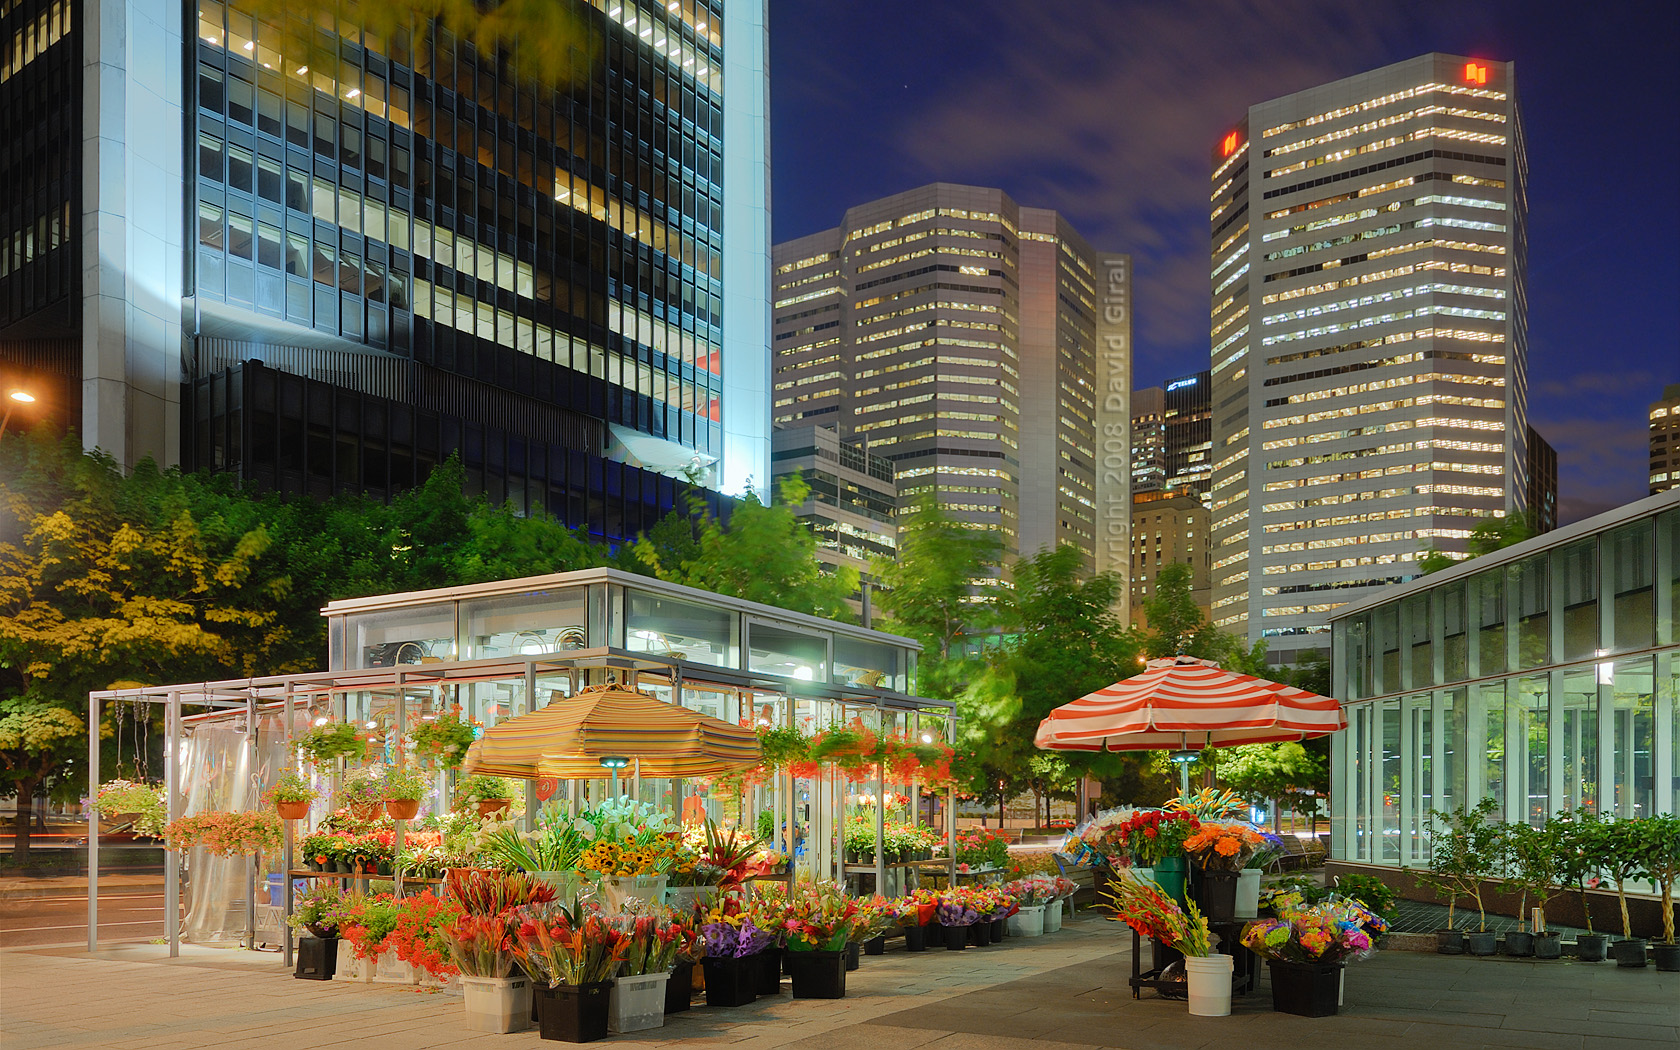 Exploring Montreal: Blue Hour at Square Victoria – Financial District